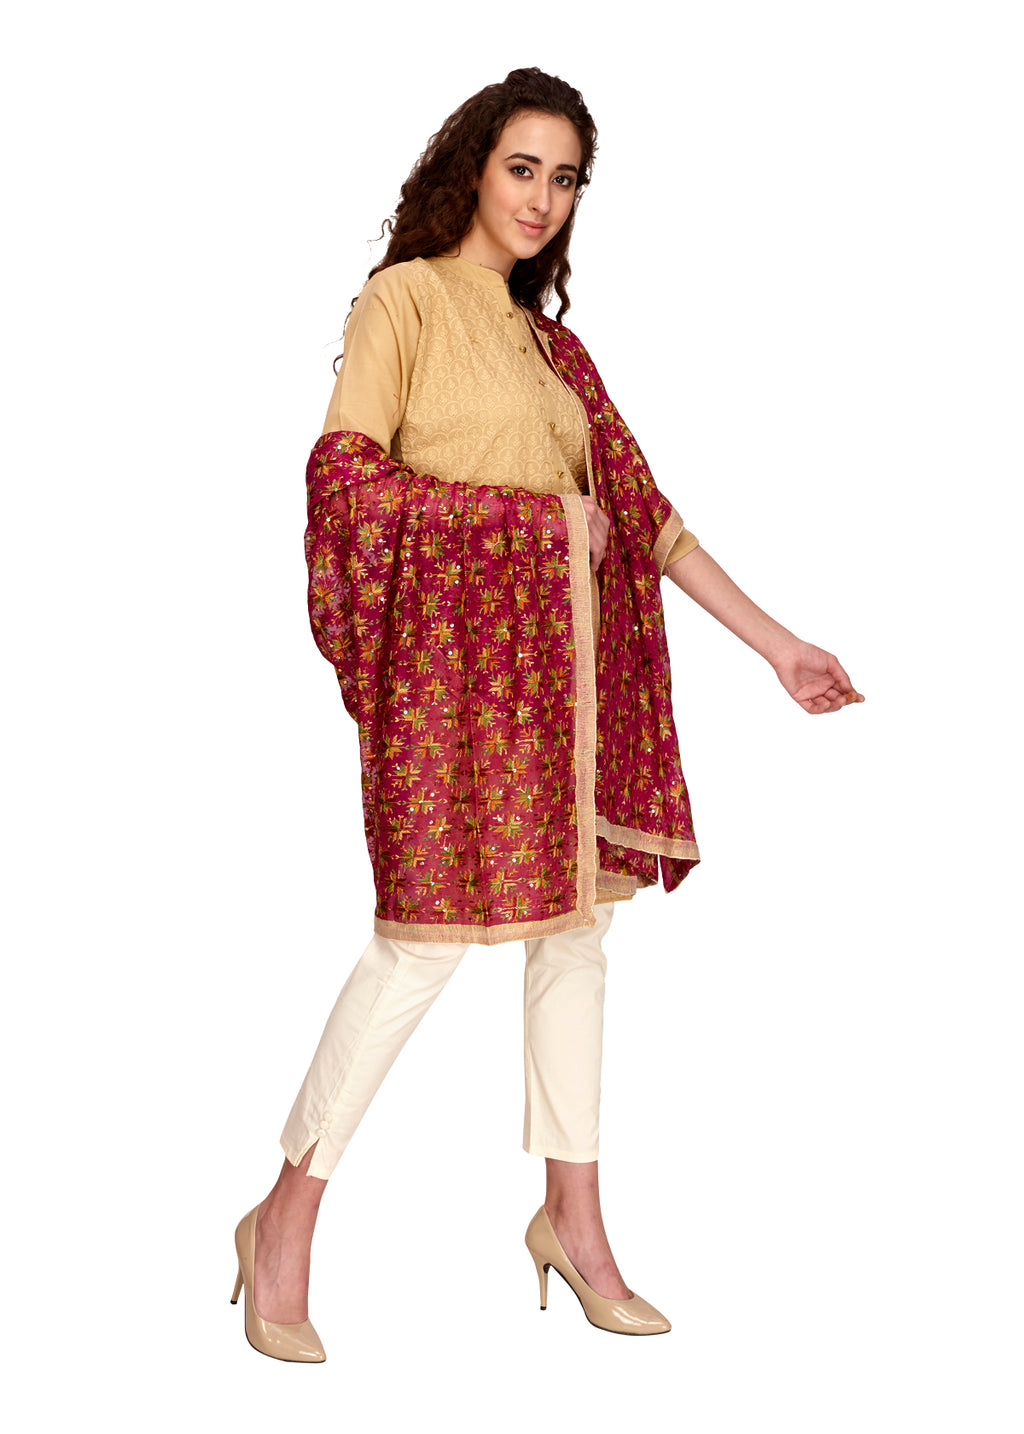 Maroon phulkari dupatta online. Floral embroidery in multi colours overall on the dupatta. Team it with a basic colour kurta to complete the look.